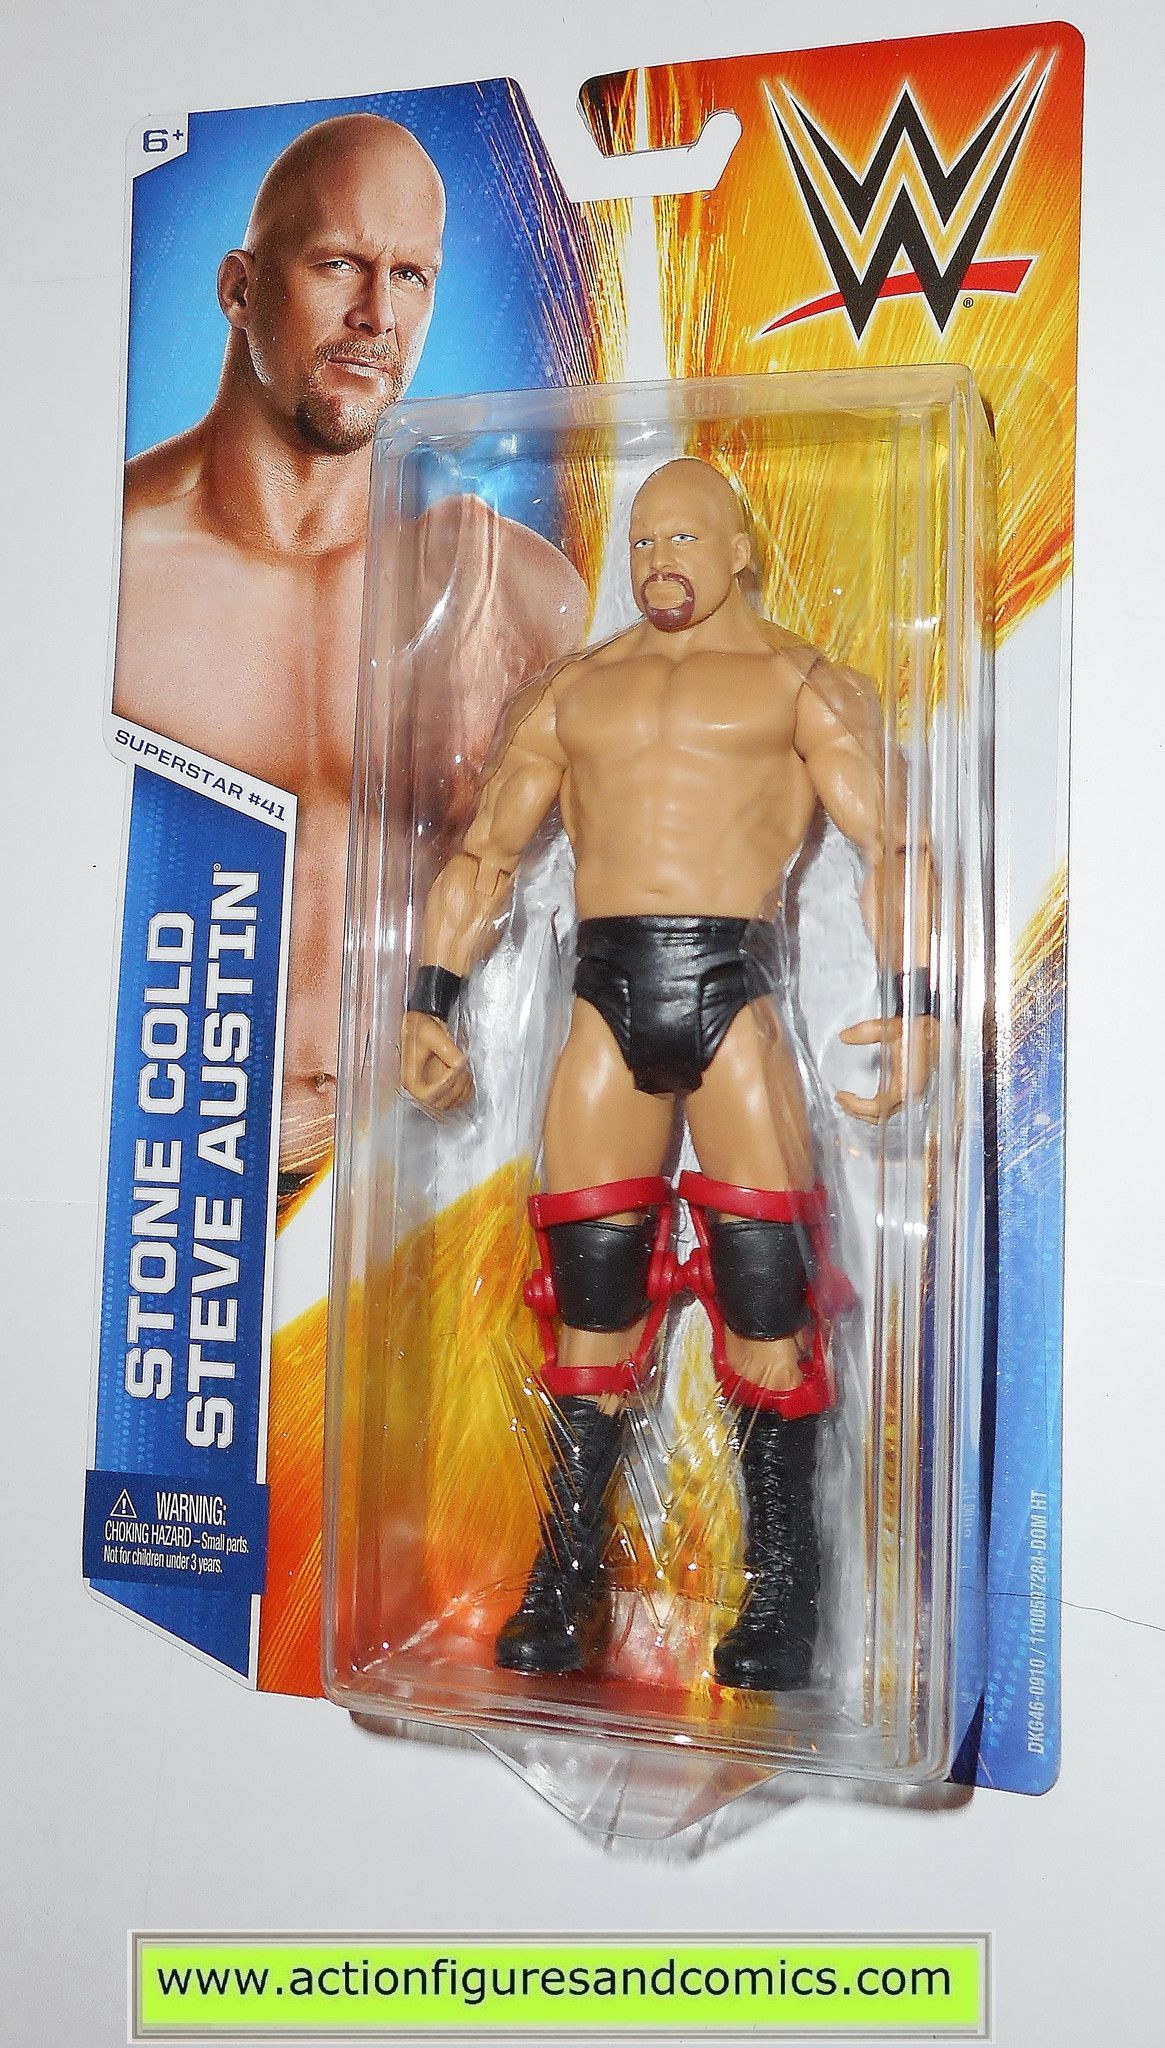 WWE STONE COLD STEVE AUSTIN WRESTLEMANIA 33 BASIC SERIES WRESTLING MATTEL FIGURE